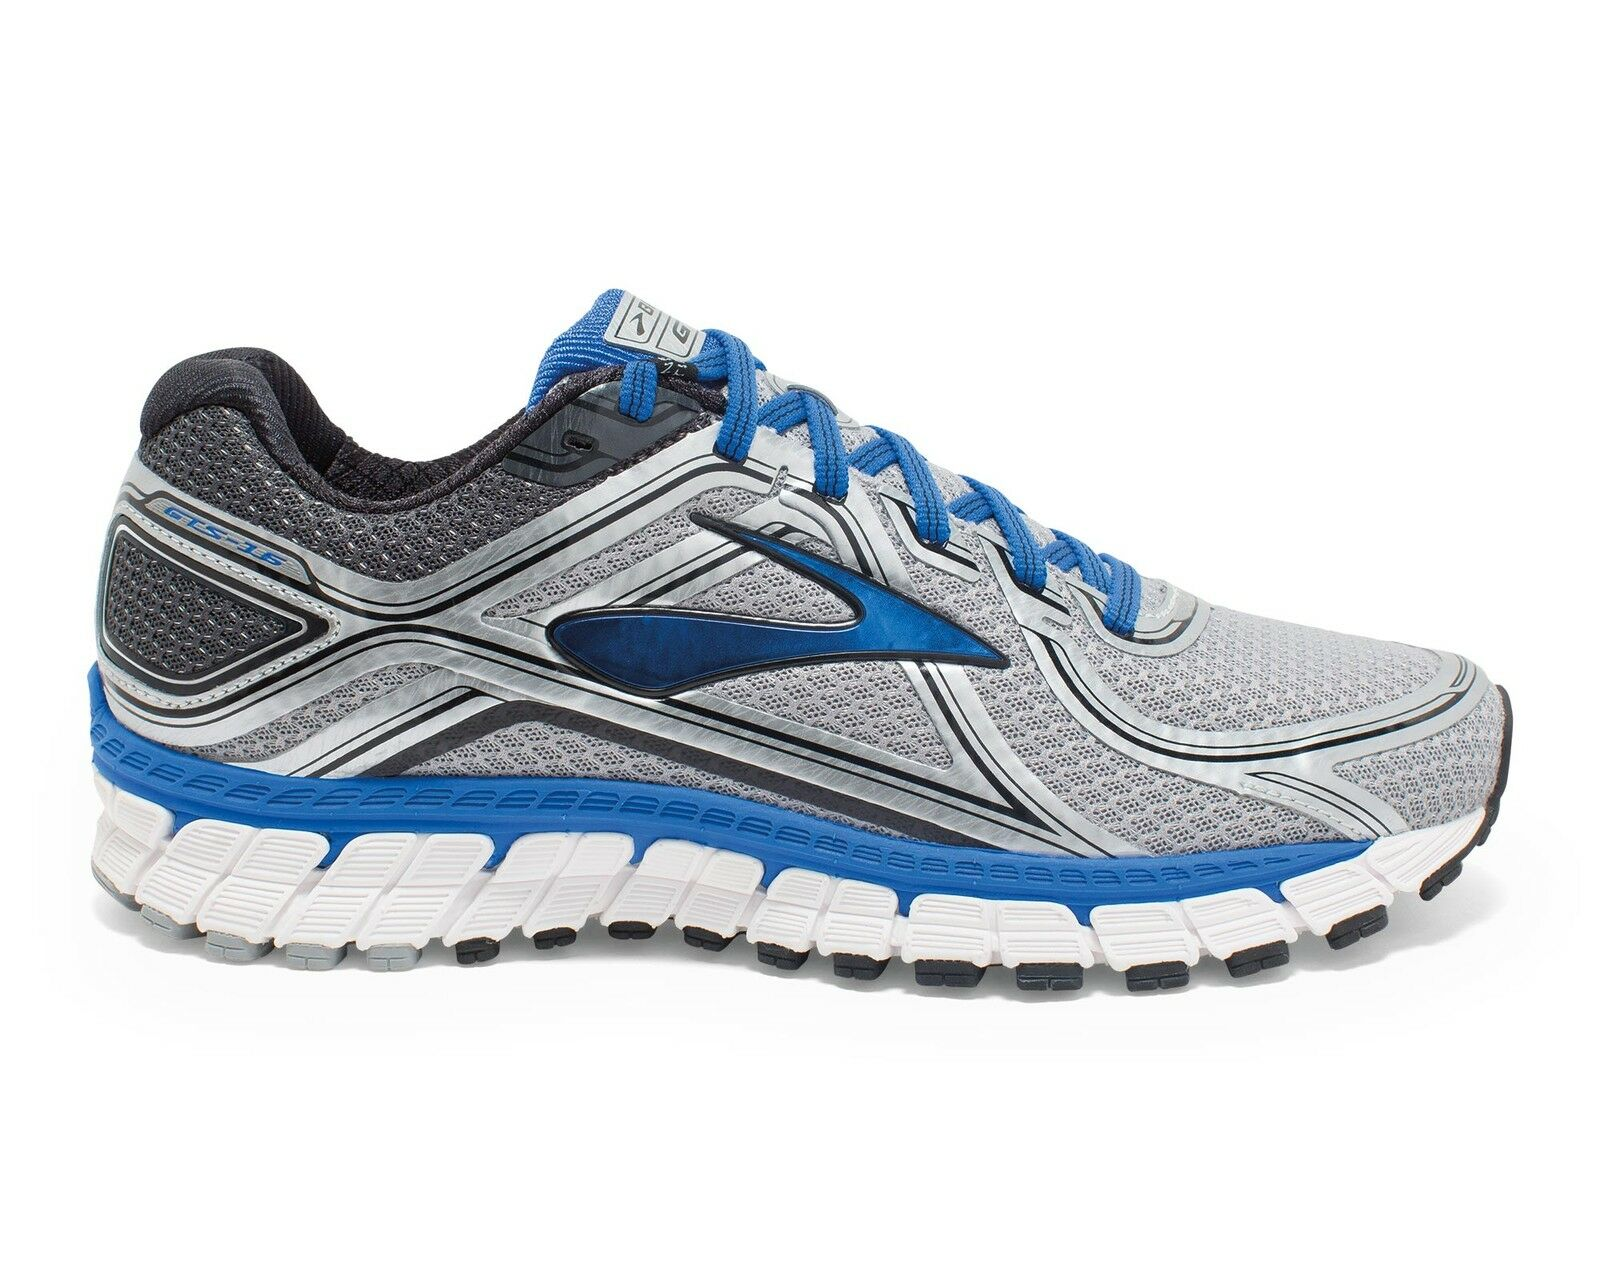 CLEARANCE || BROOKS ADRENALINE GTS 16 MENS RUNNING SHOES (D) (181)